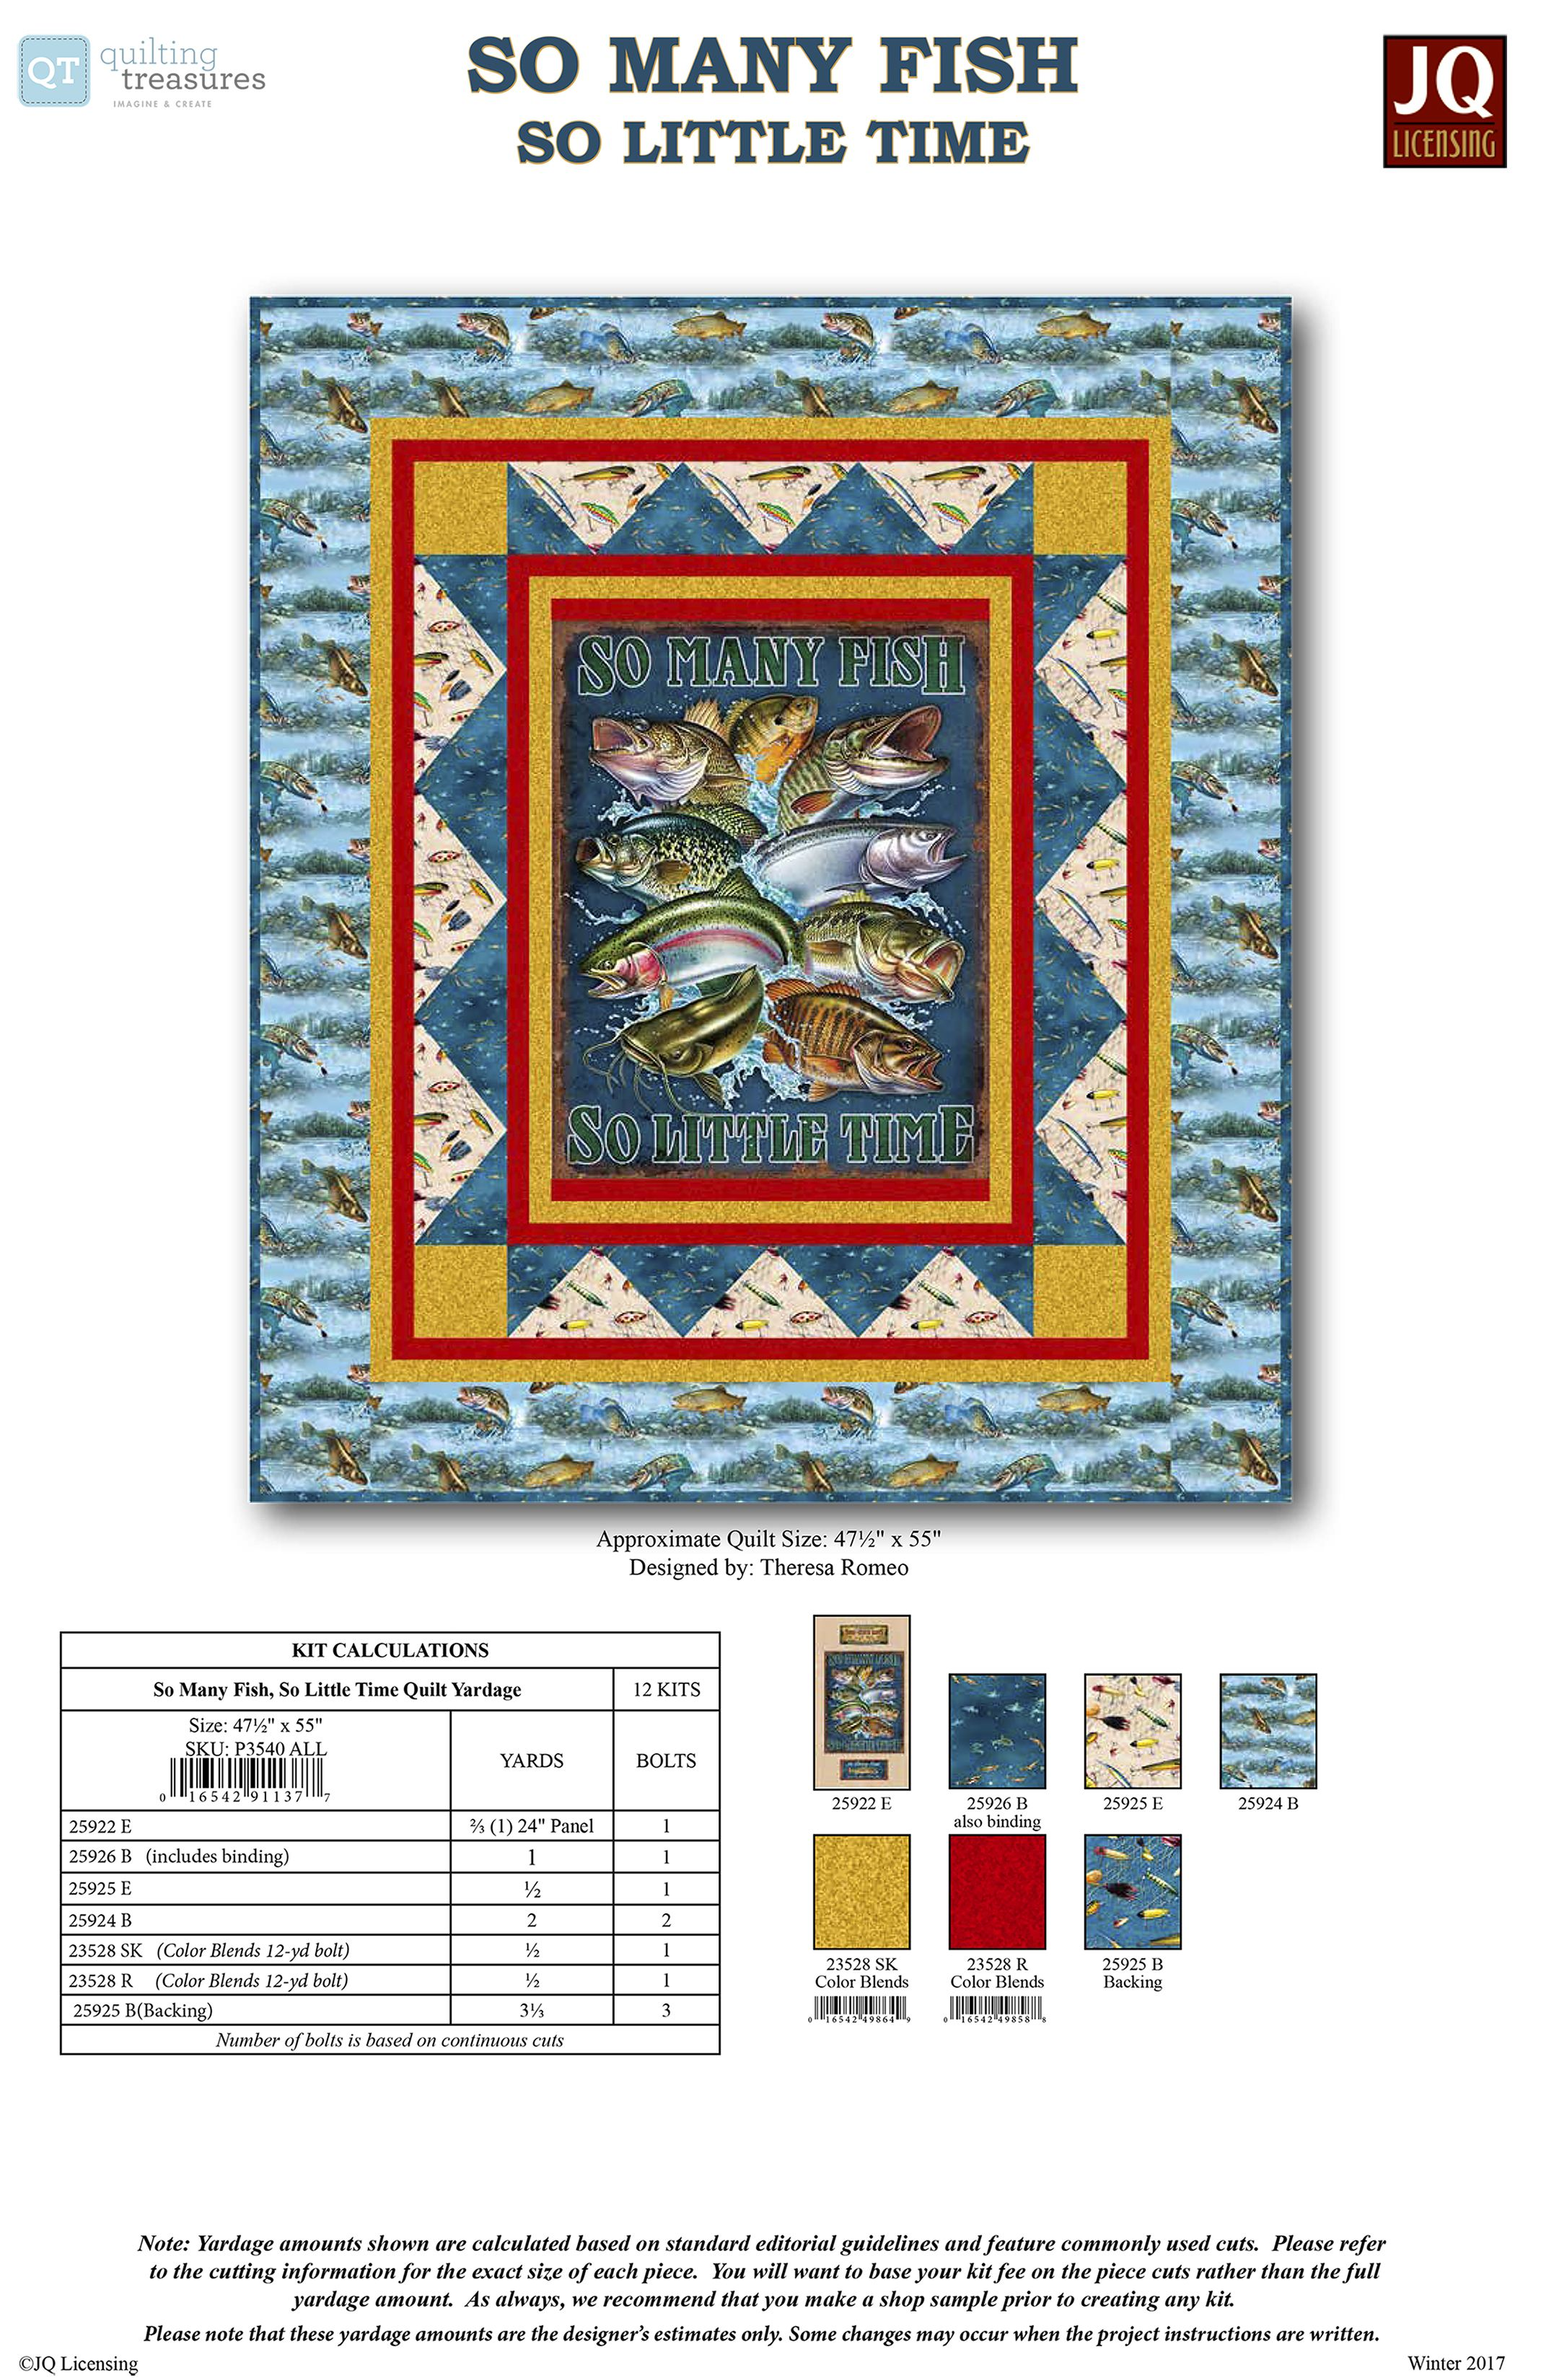 QT Fabrics presents uSo Many Fish So Little Timeu by JQ Licensing